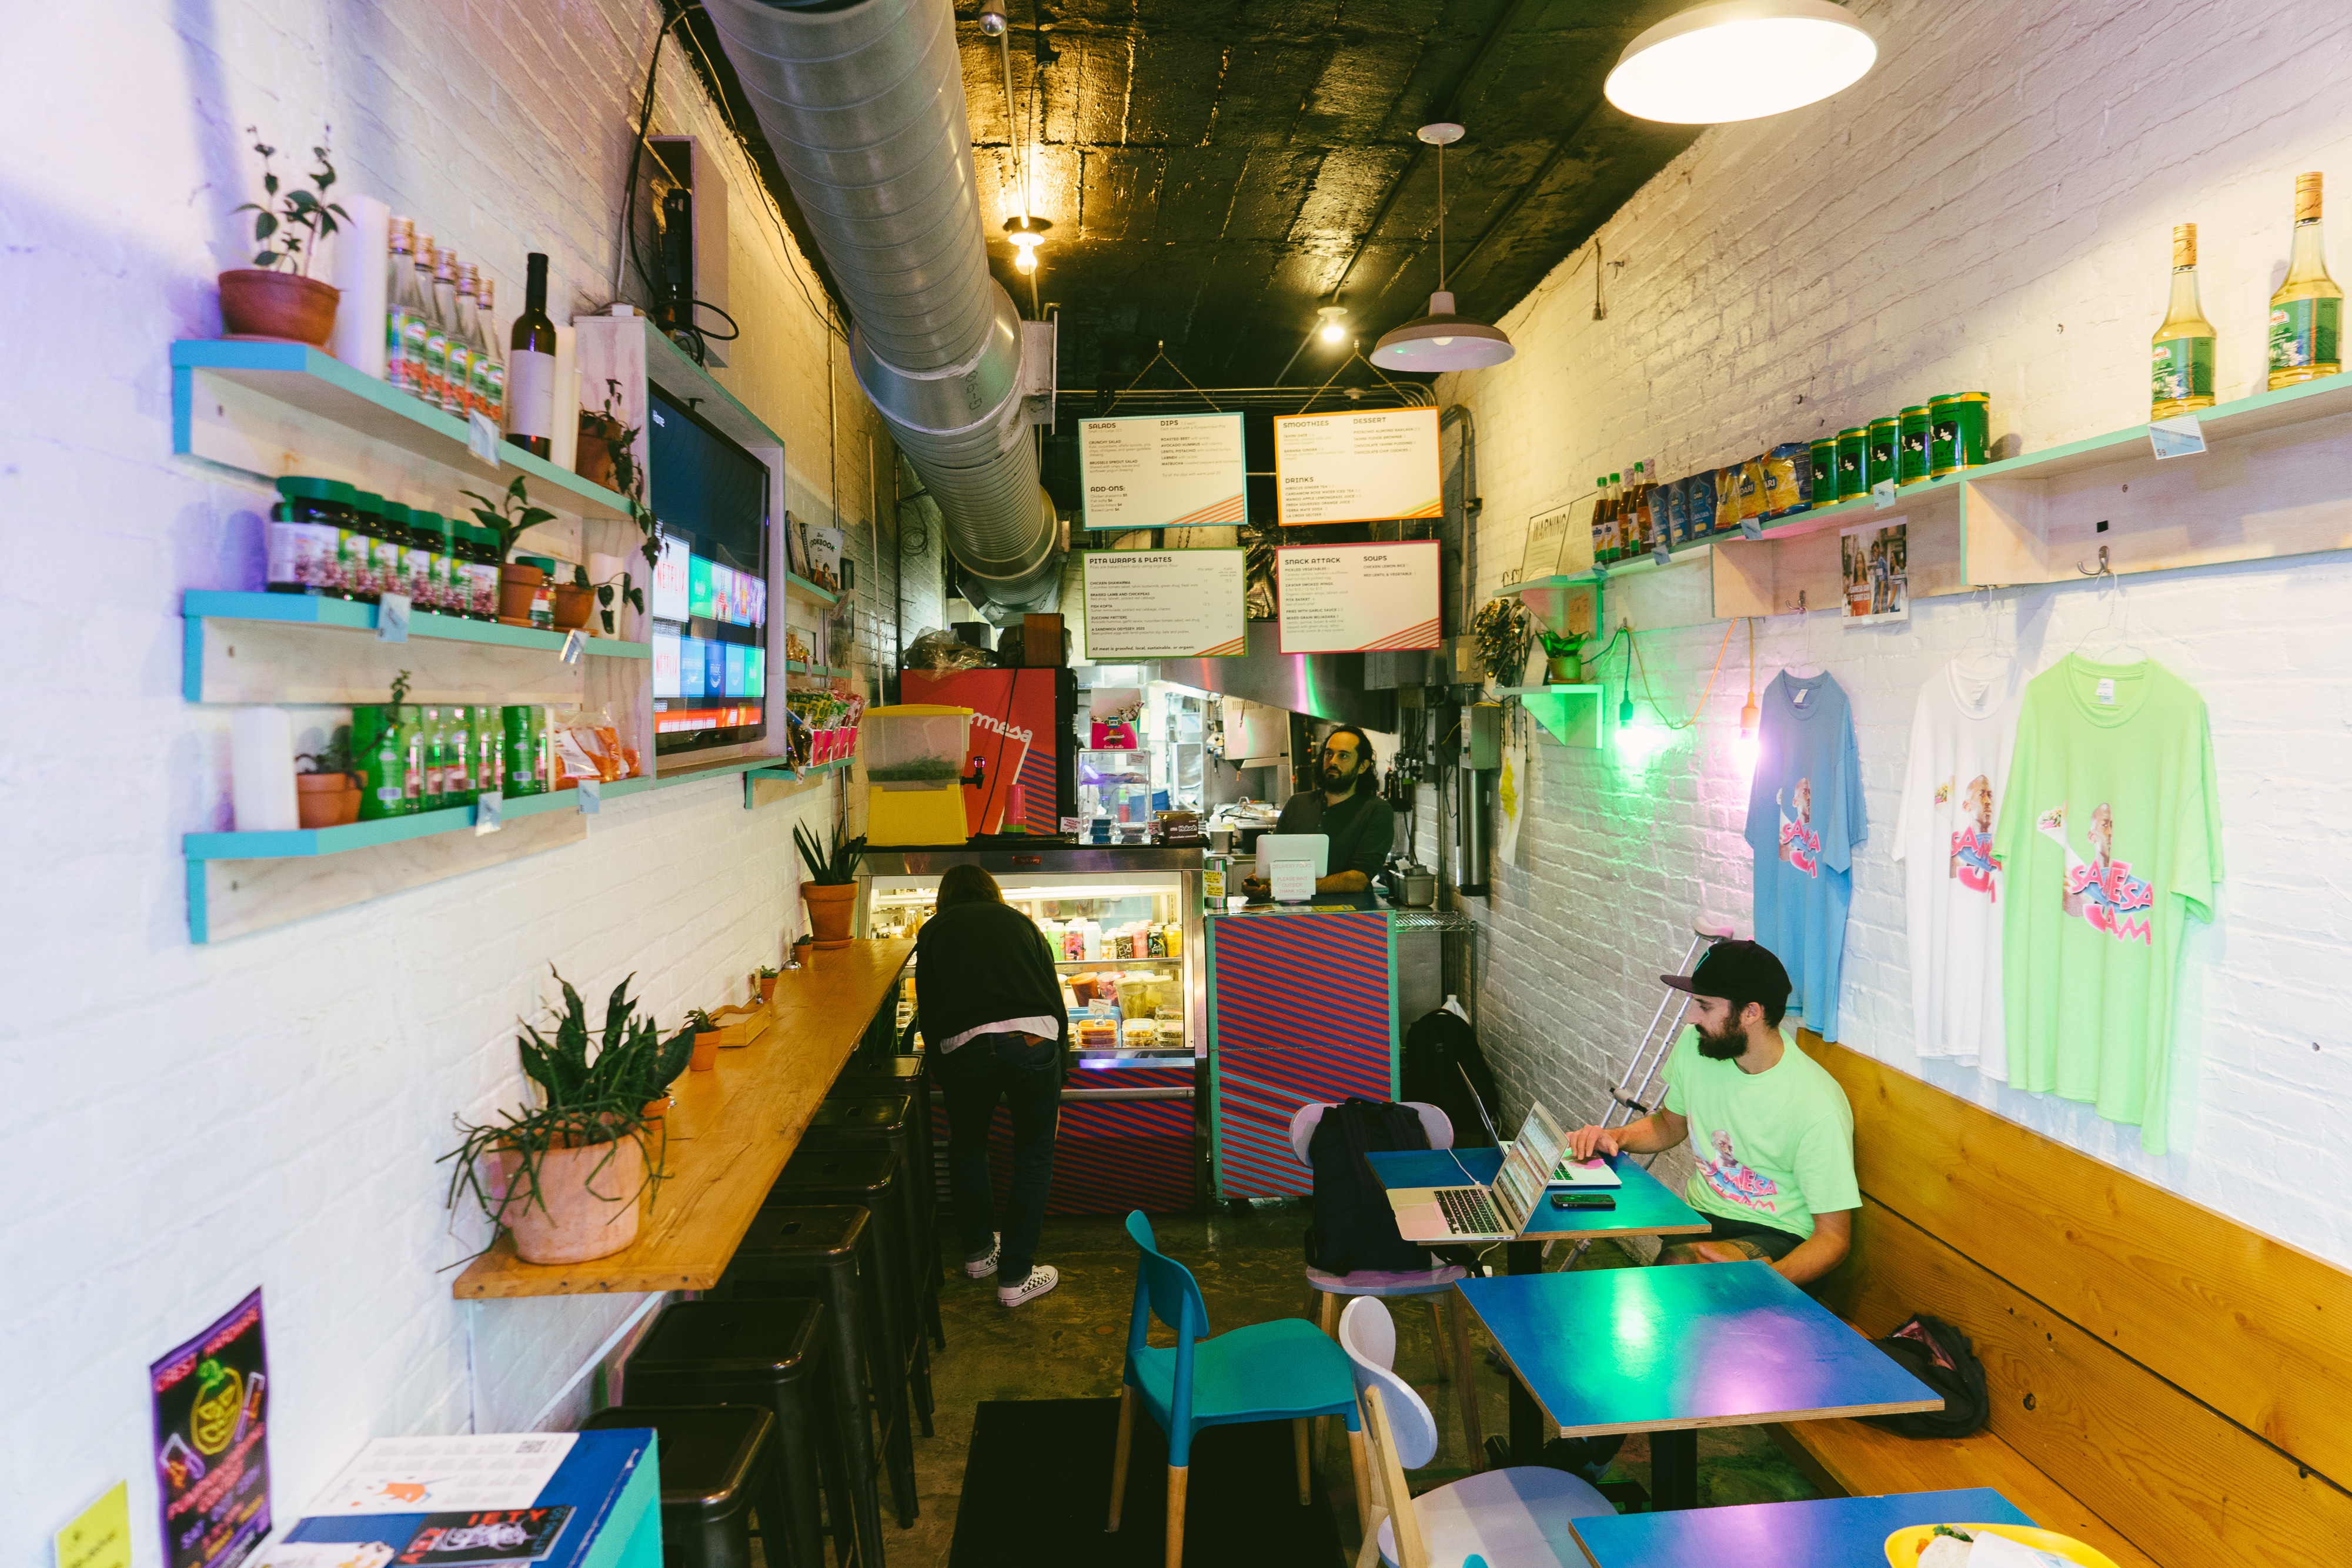 The Best Restaurants In Williamsburg - New York - The